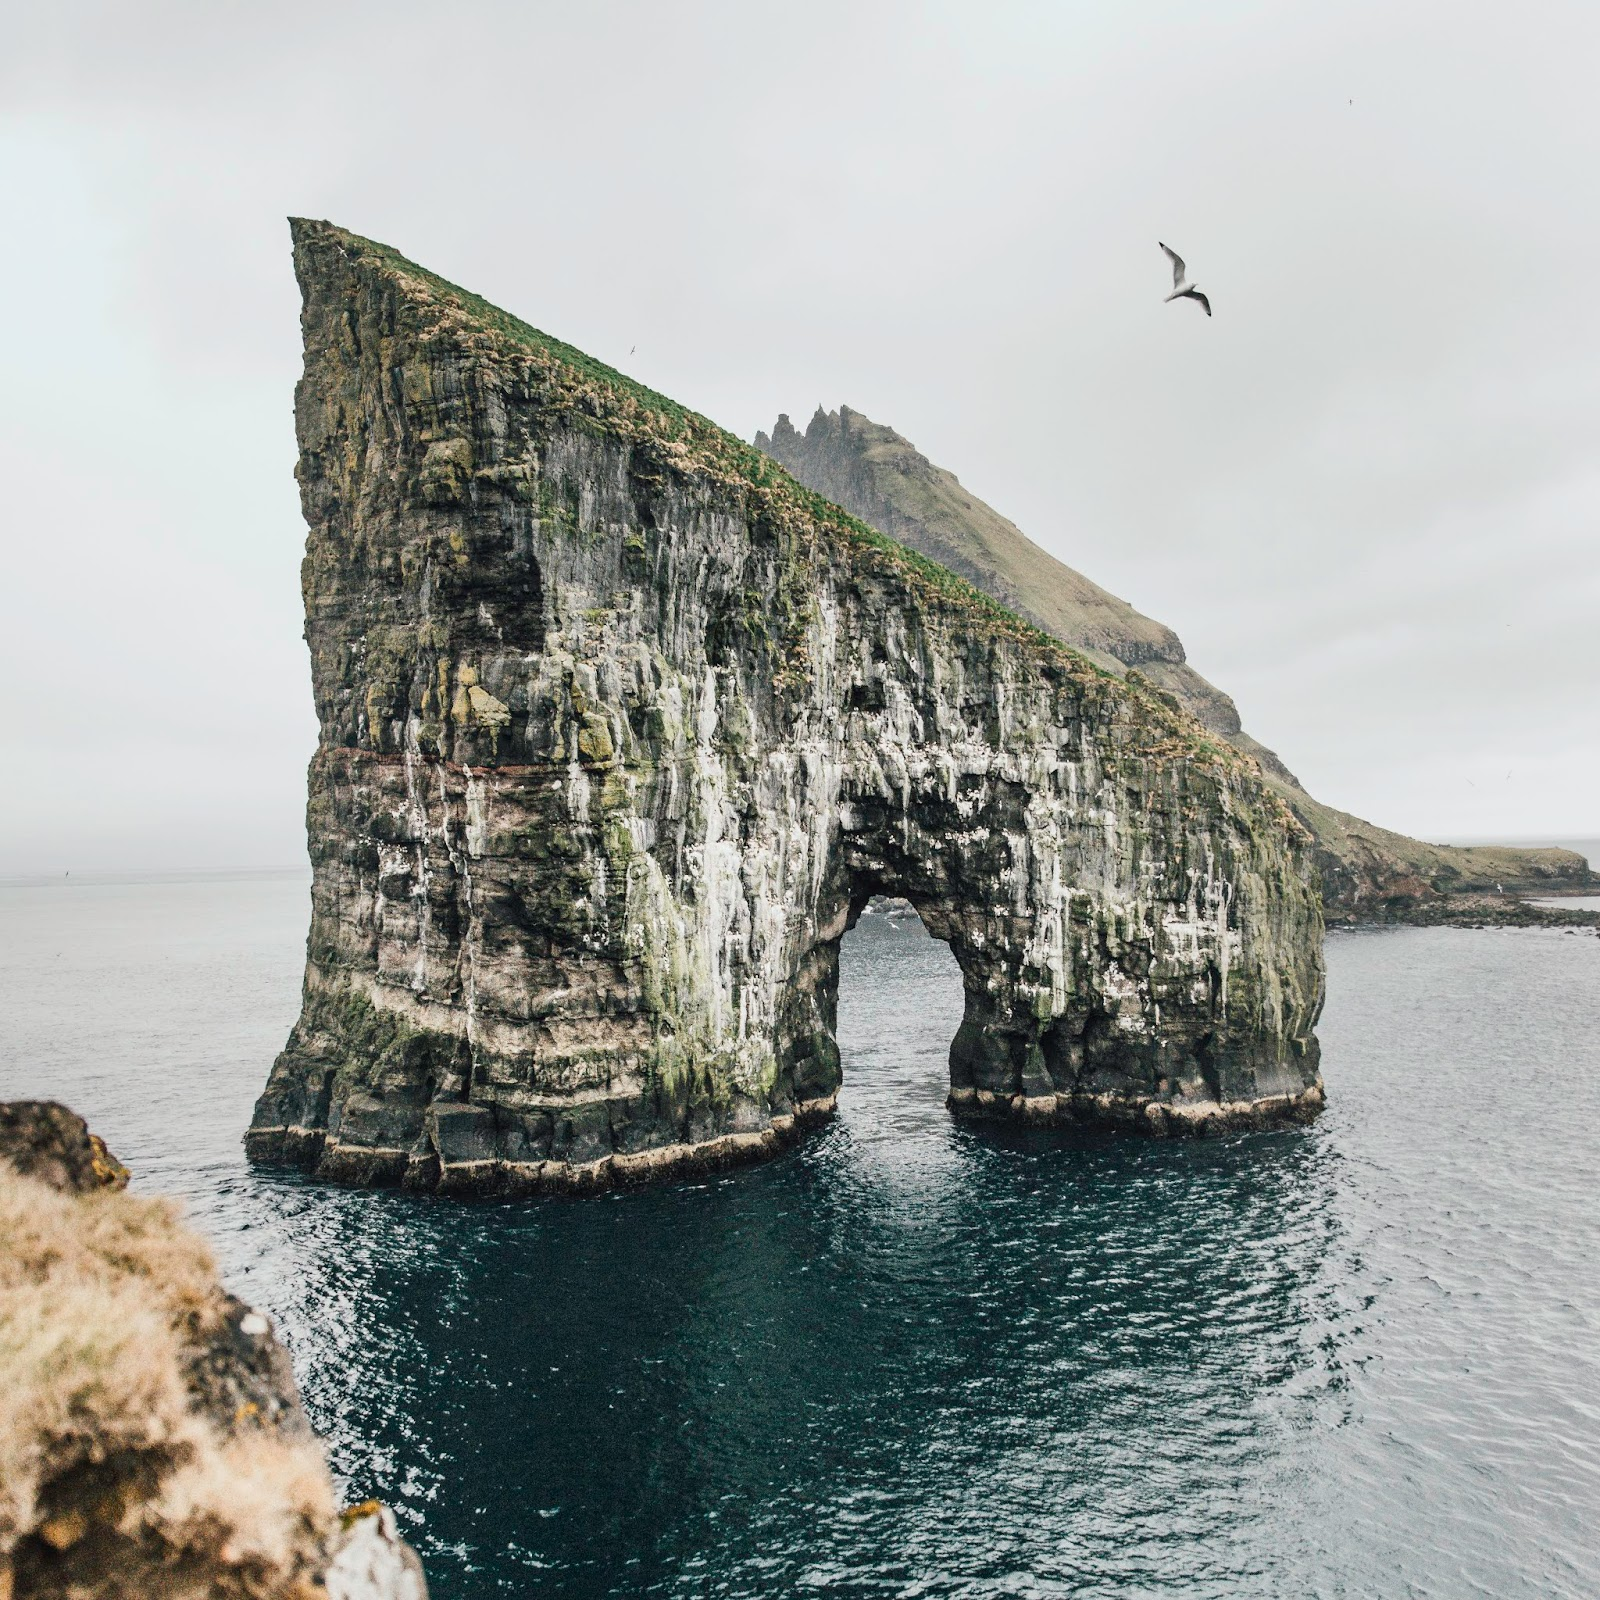 Drangarnir sea stacks faroe island do i need a guide liquid grain liquidgrain